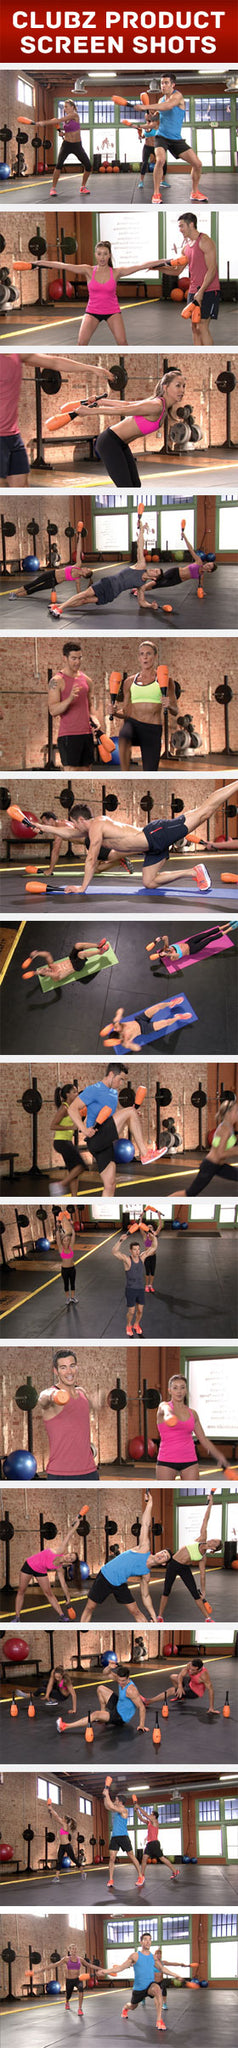 Clubz Fitness workout shots